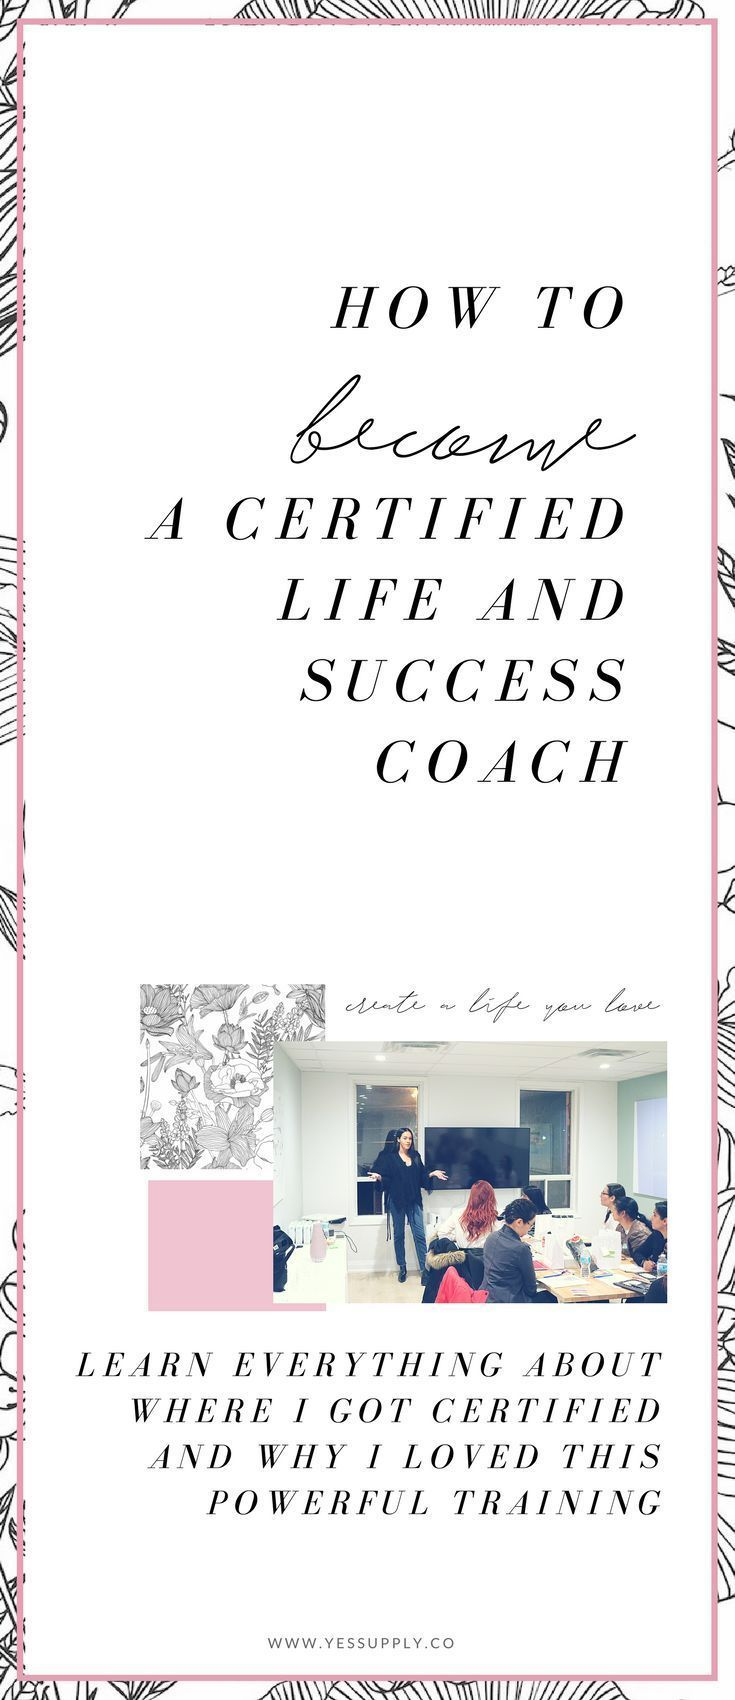 How To Get Certified As A Coach in NLP, Success + Life